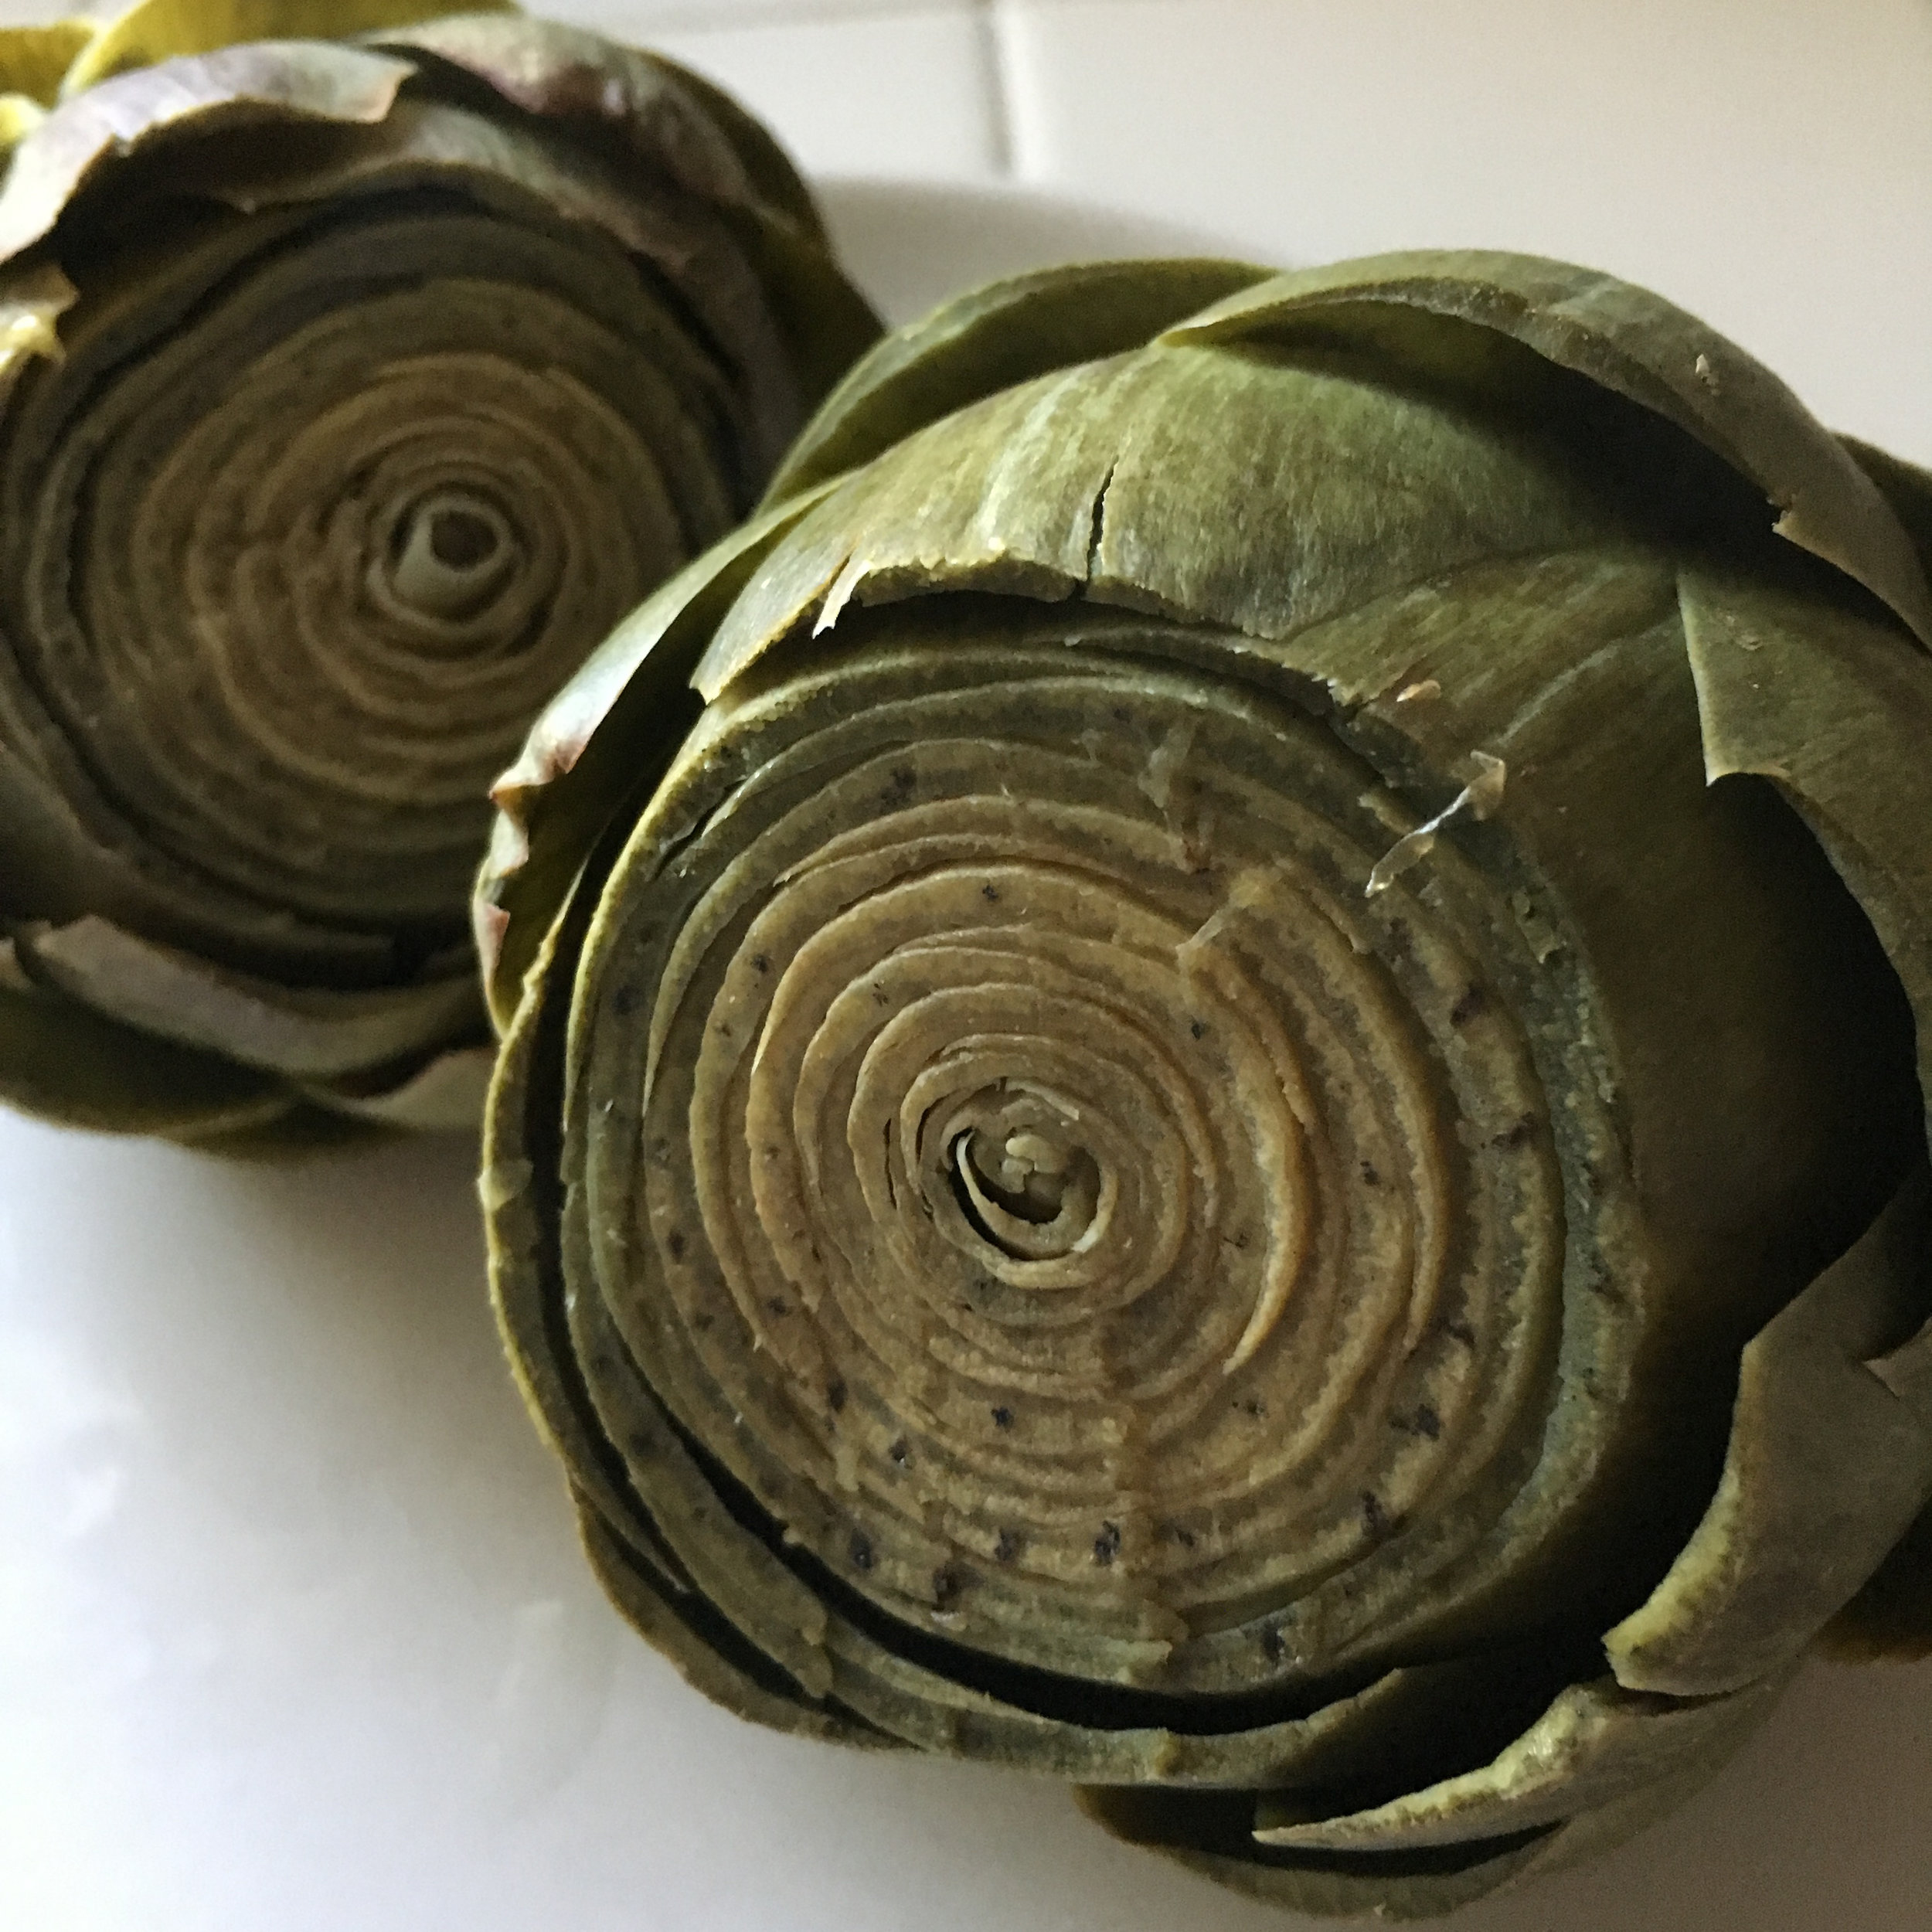 Still not sure what's imperfect about these artichokes, they were delicious!